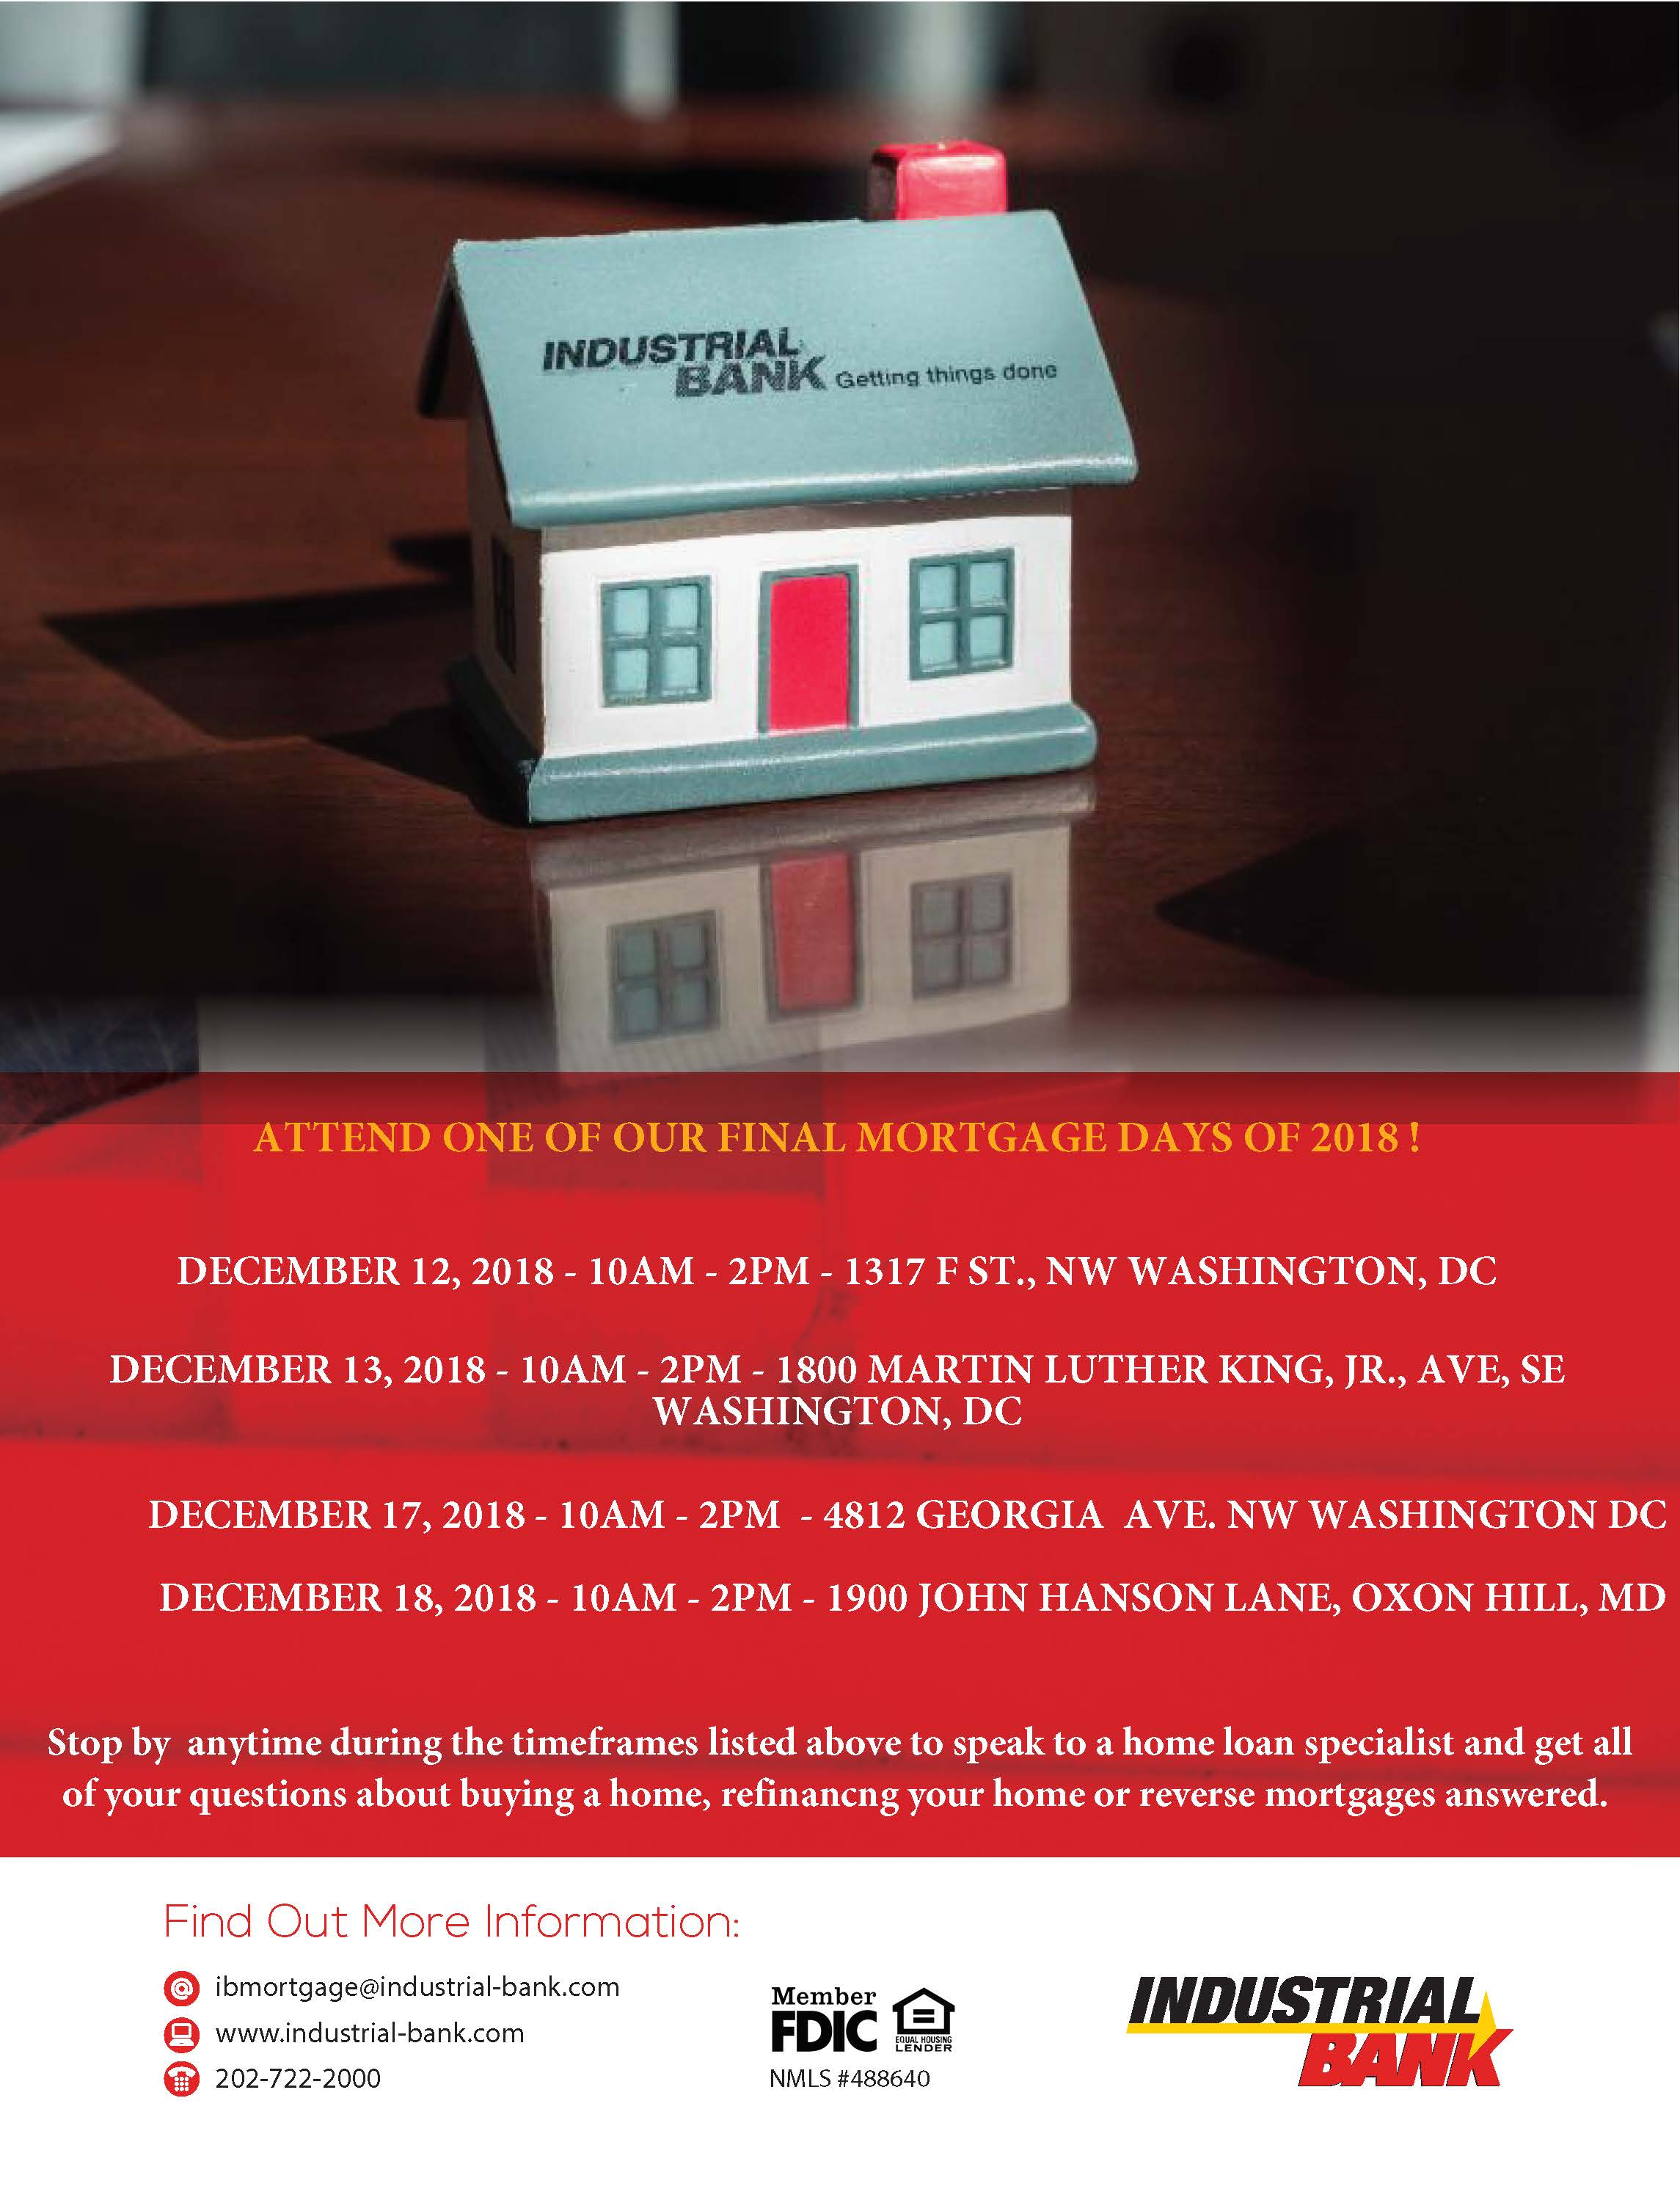 Mortgage Day-Final for 2018.jpg